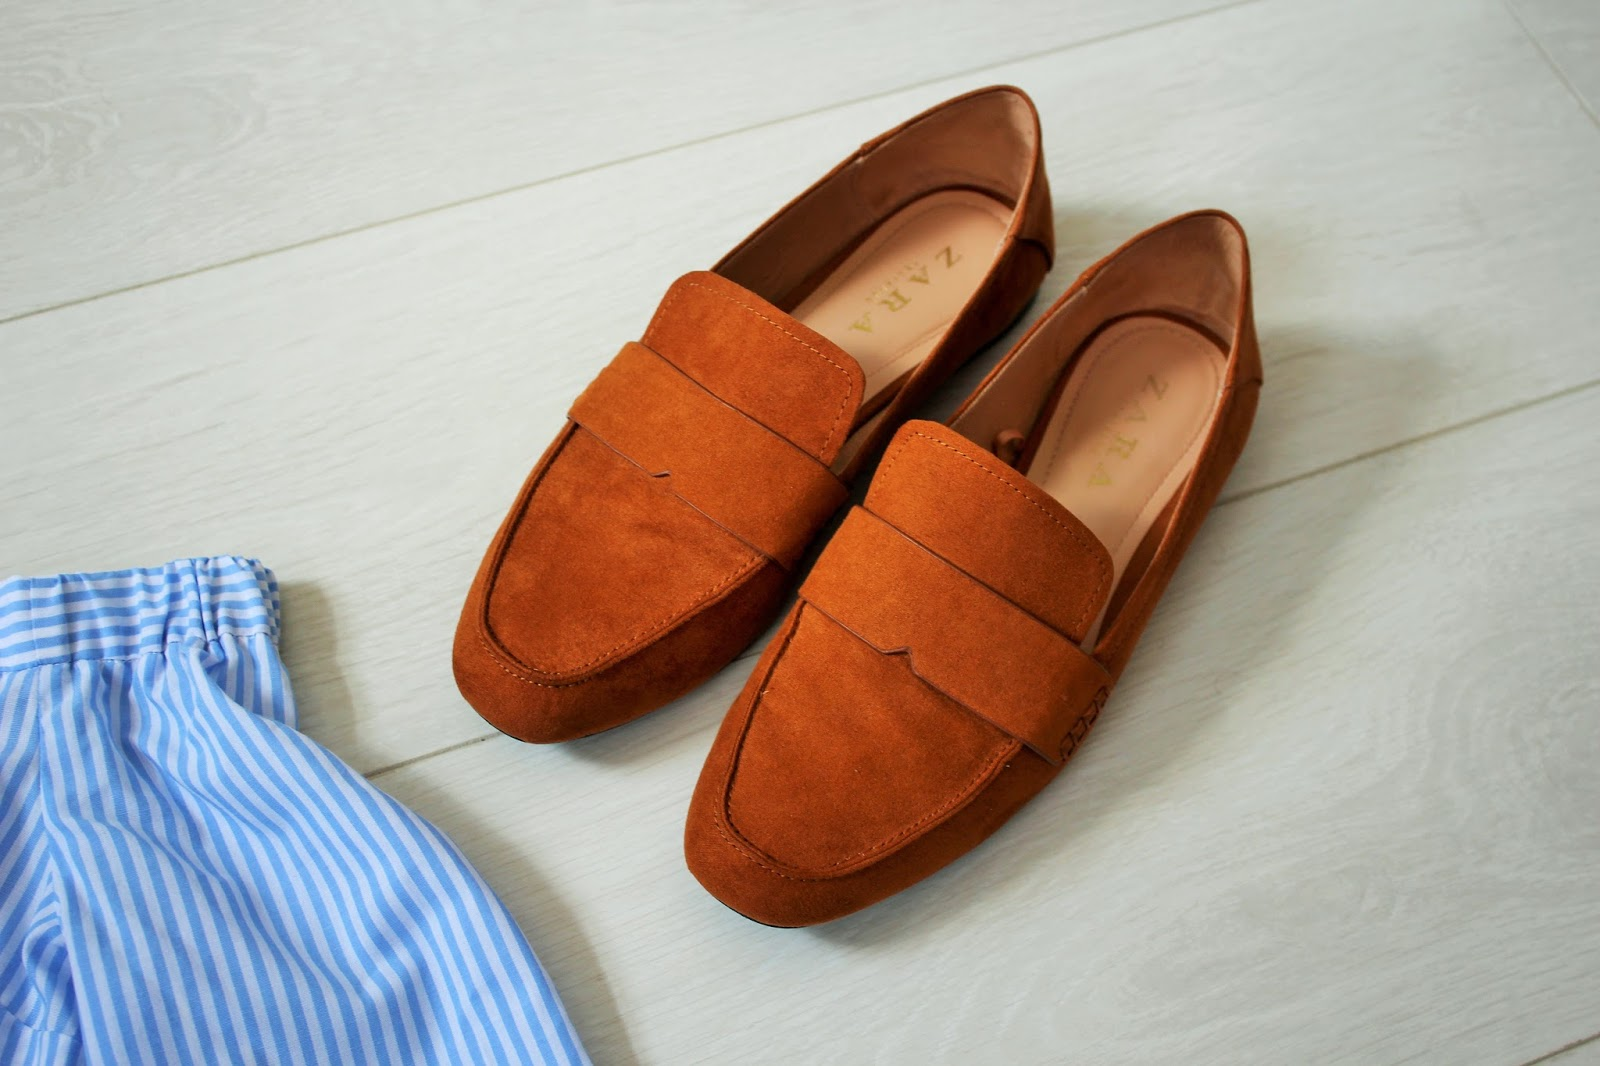 May Favourites 2017 - 8 - Zara Loafers